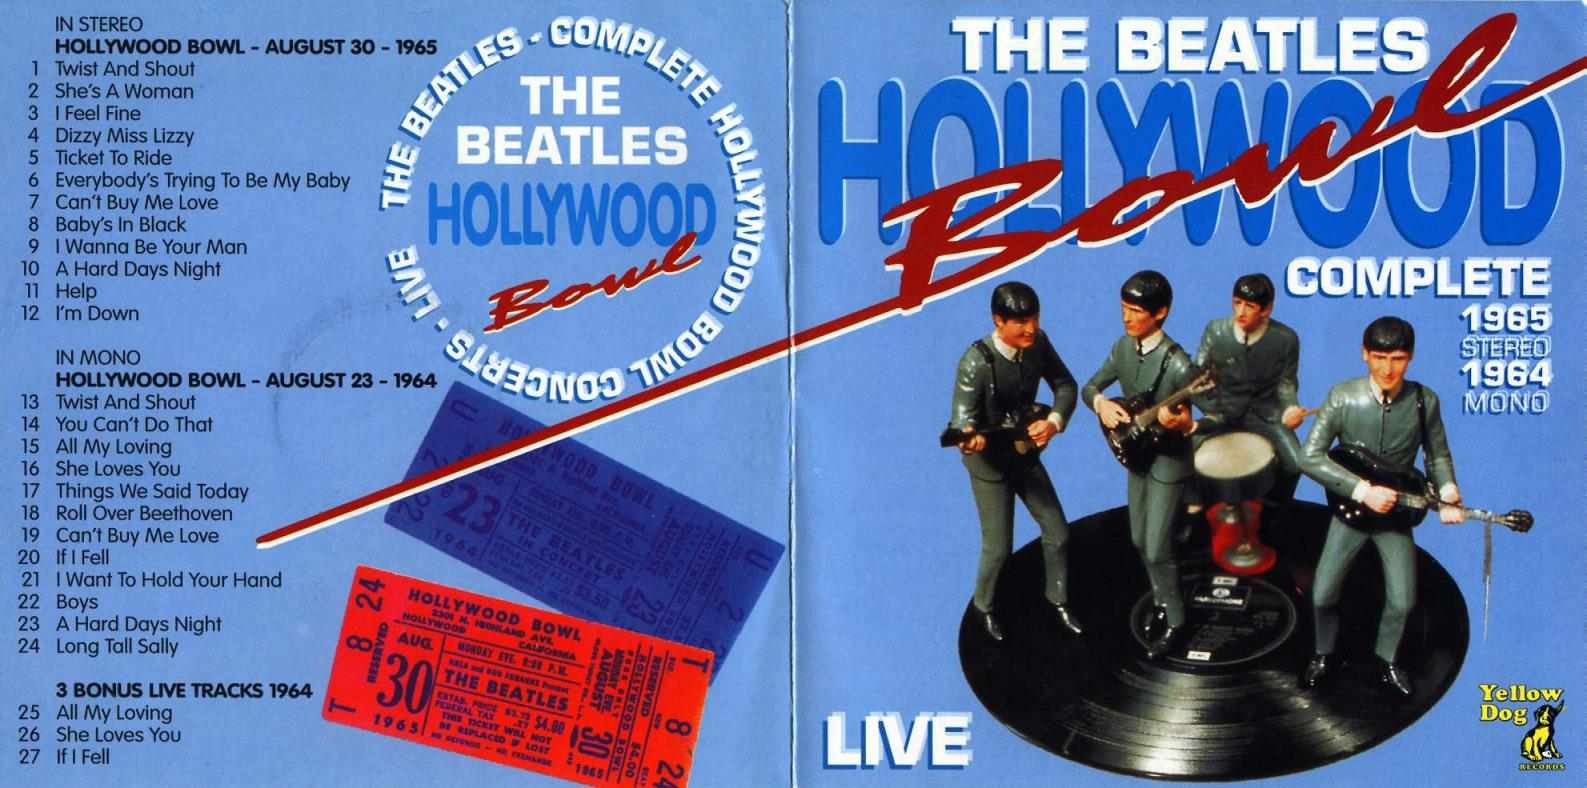 1965-08-30 - Hollywood Bowl complete (front)